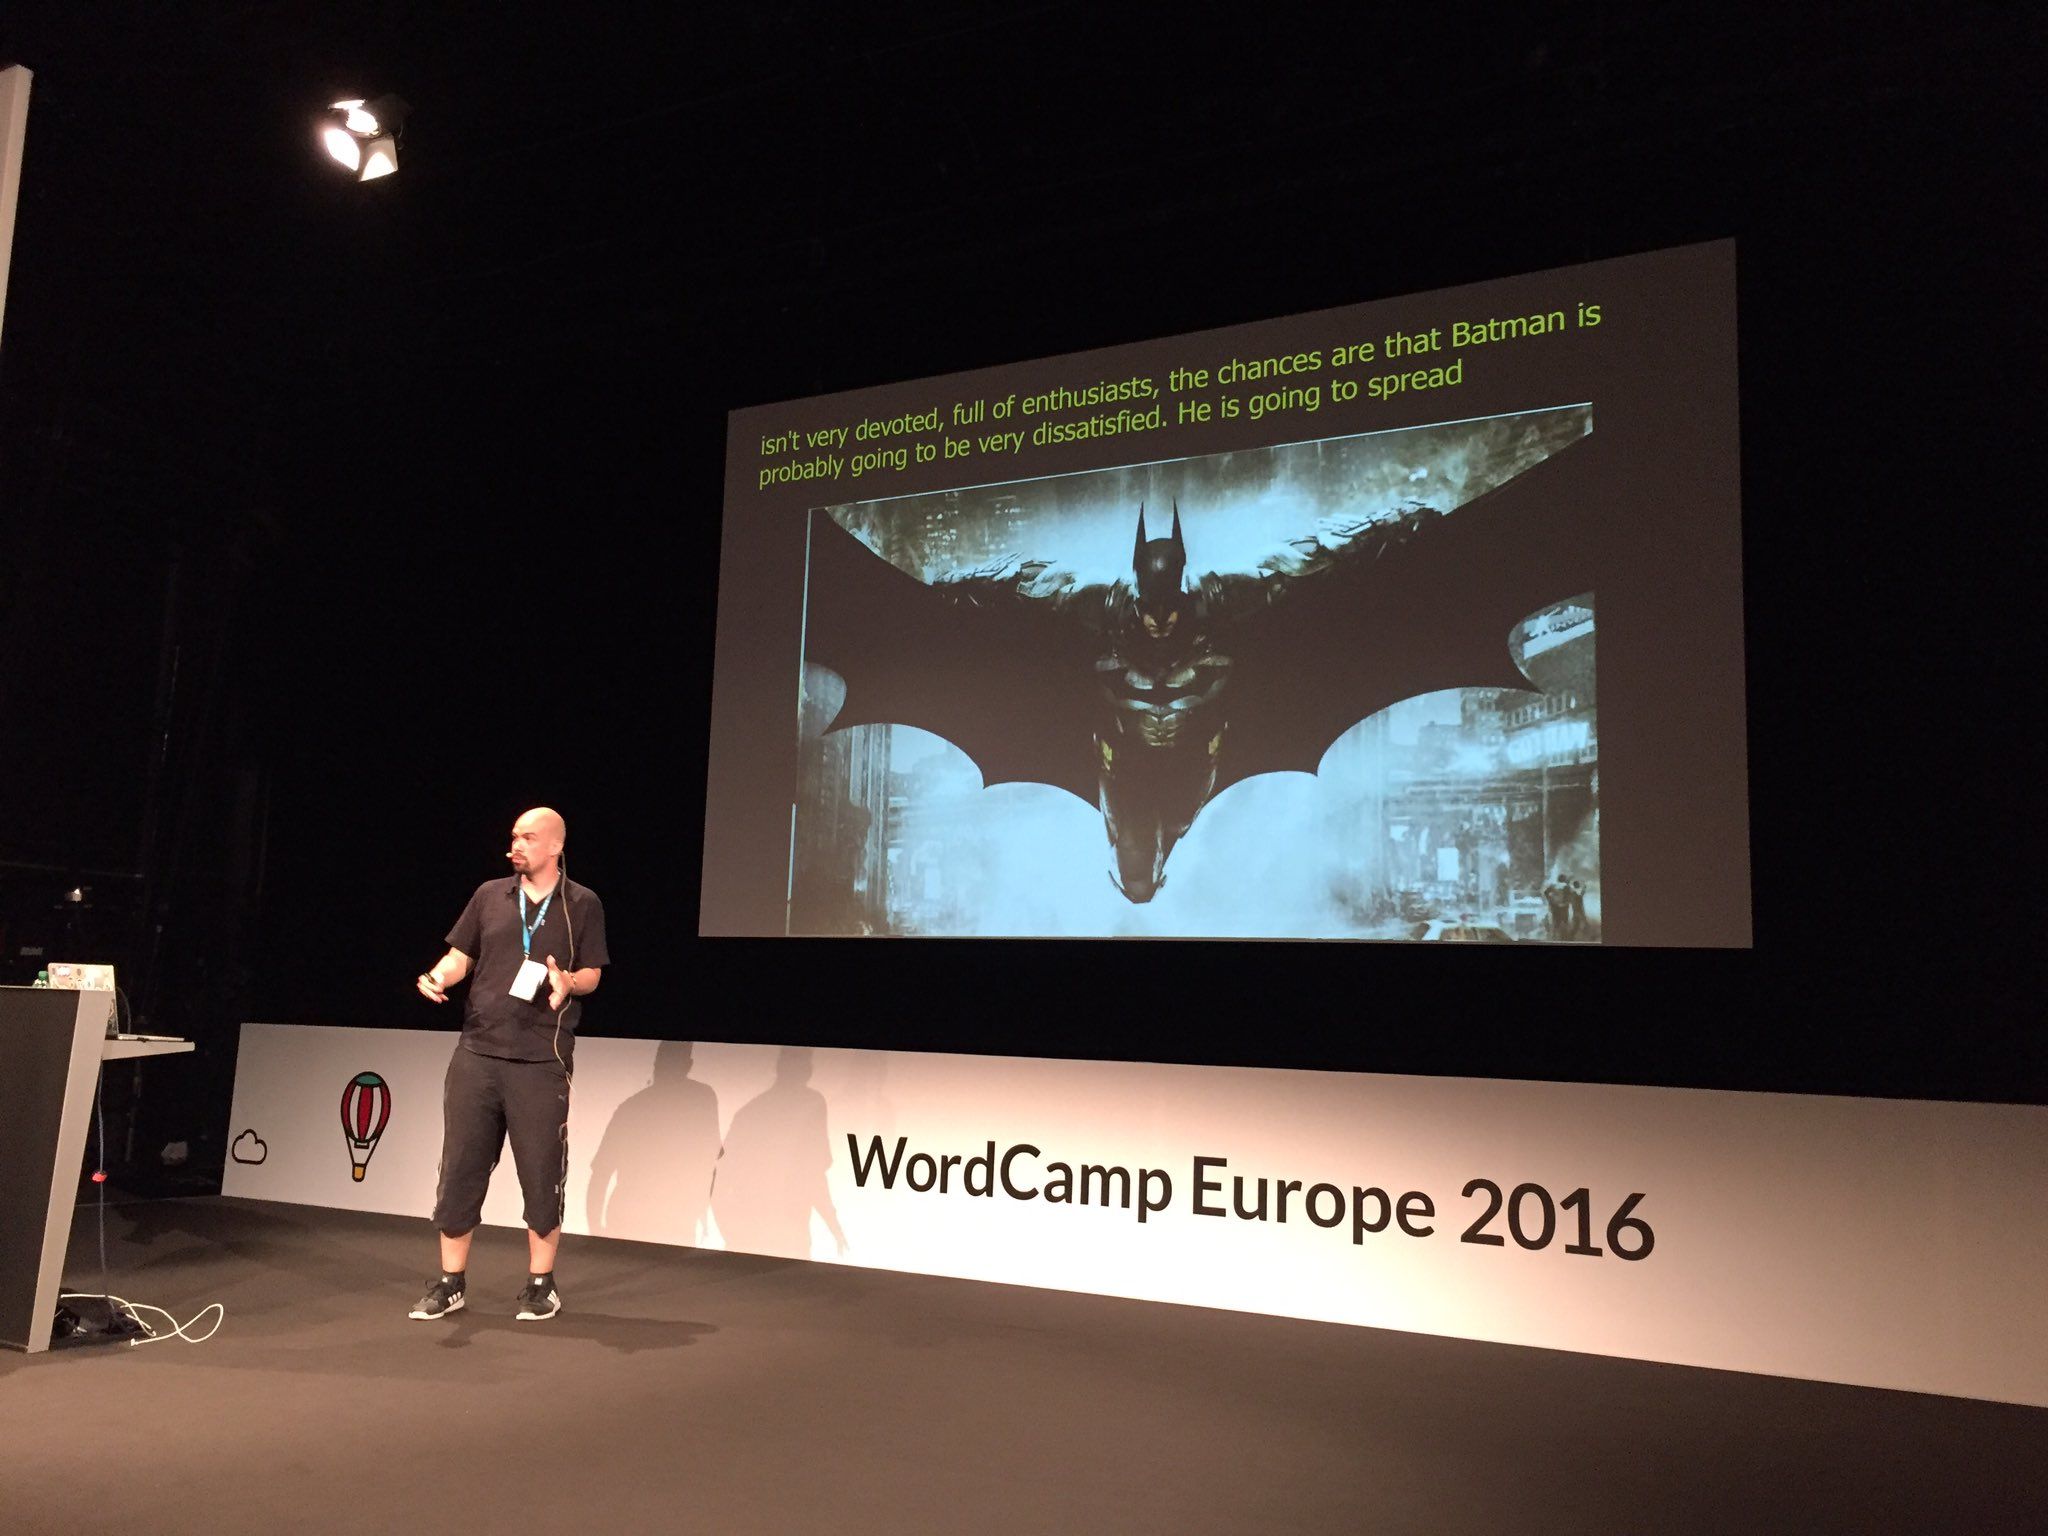 Thank you @WCEurope